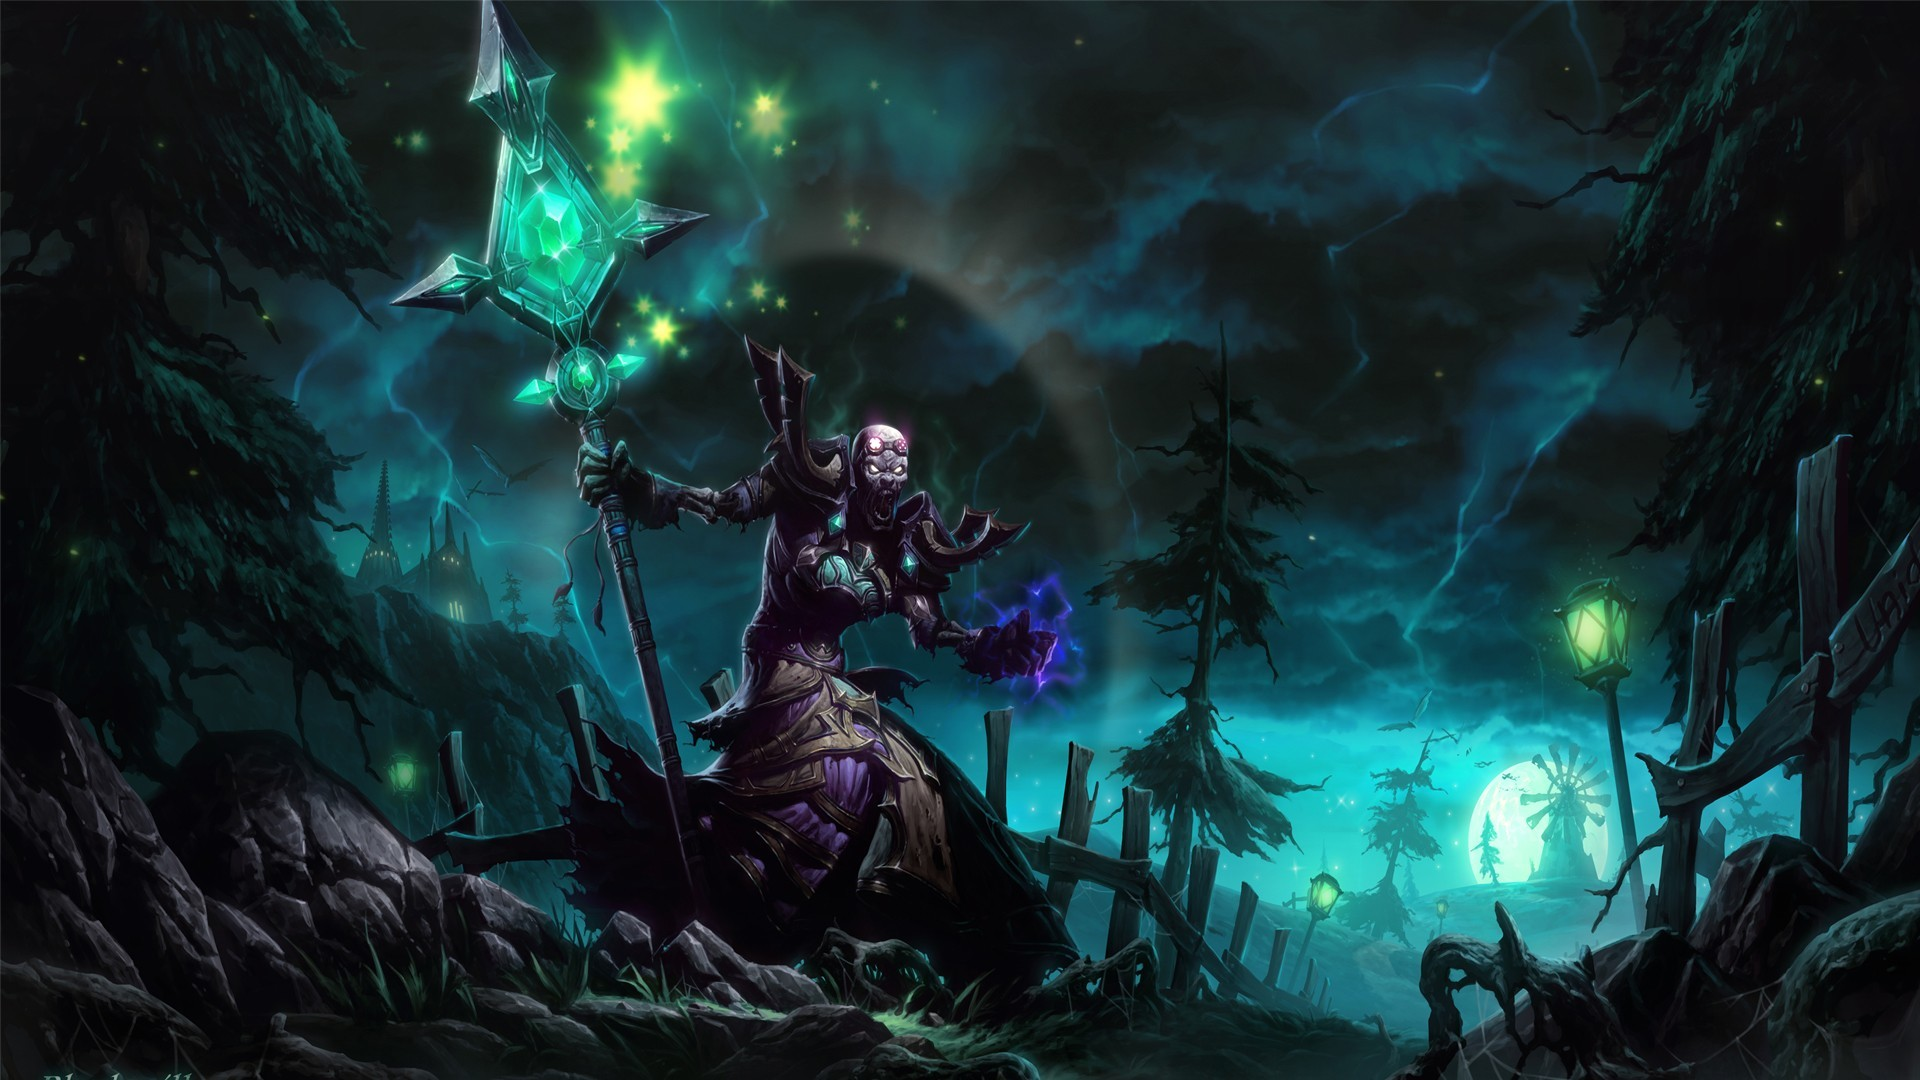 Wallpapers :: Mage, trees, fences, World of Warcraft, undead, grass